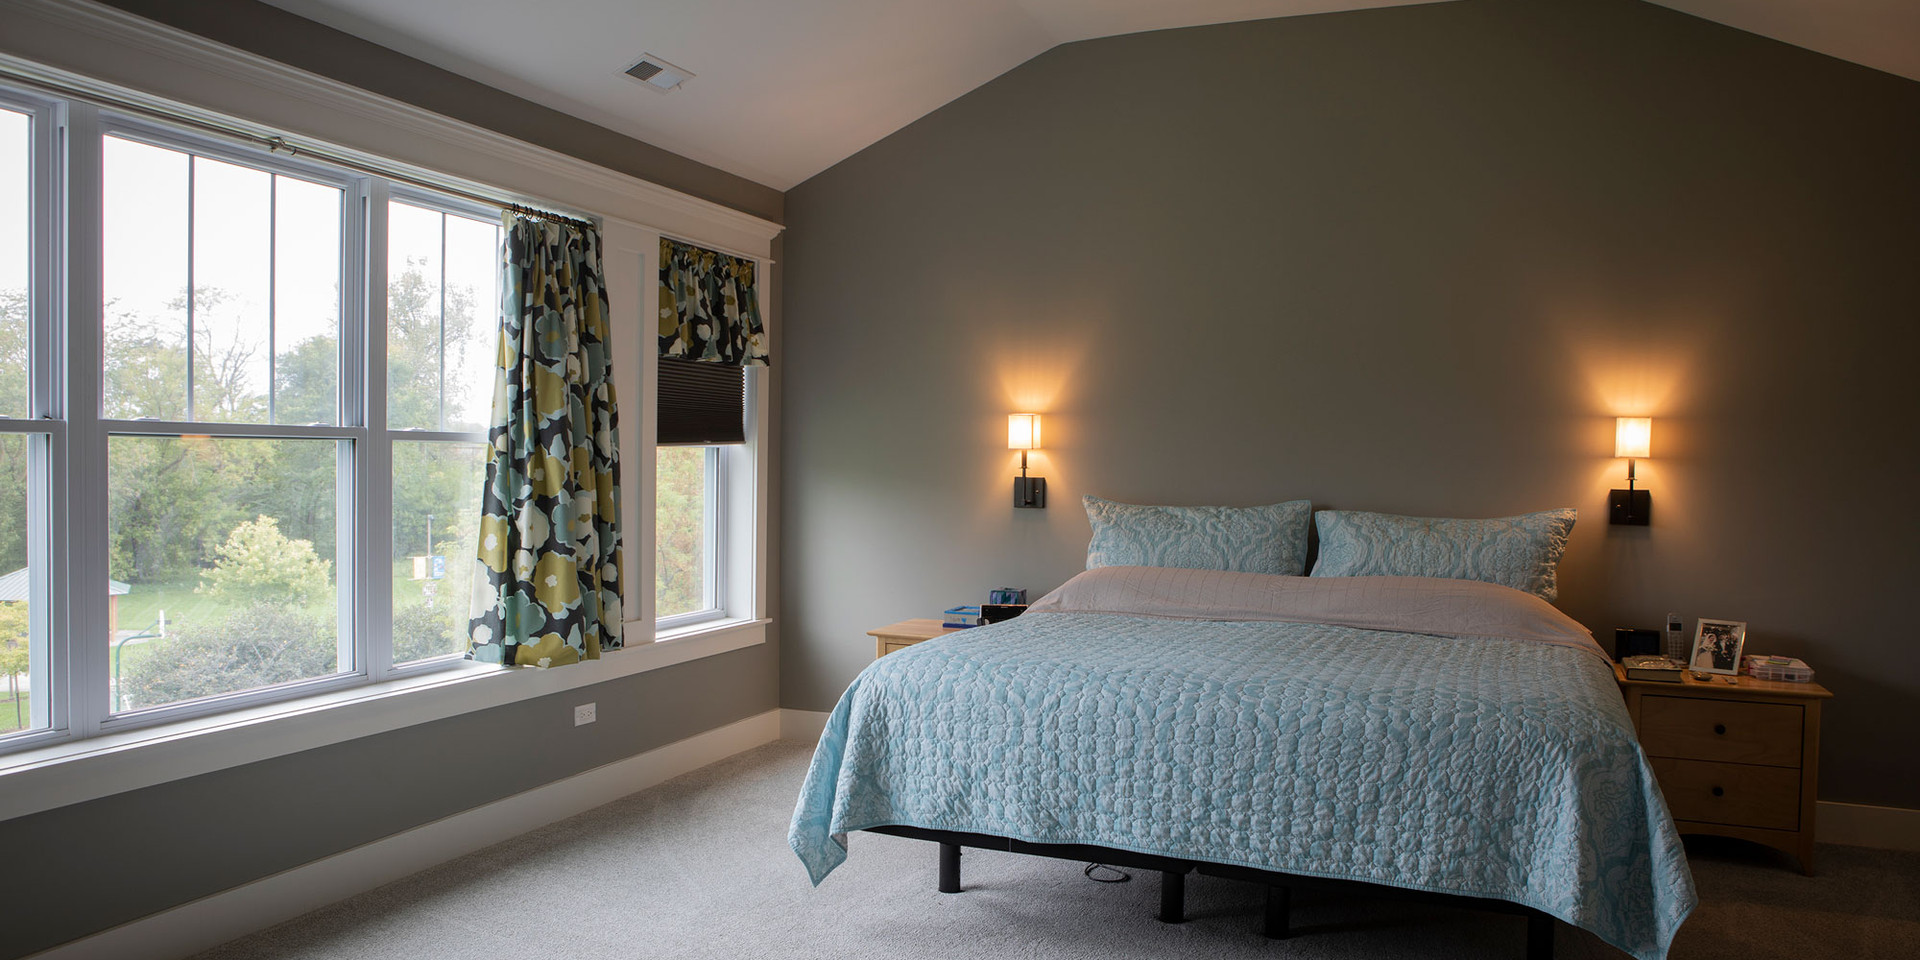 New-Home-Nottingham-Bedroom-20.jpg